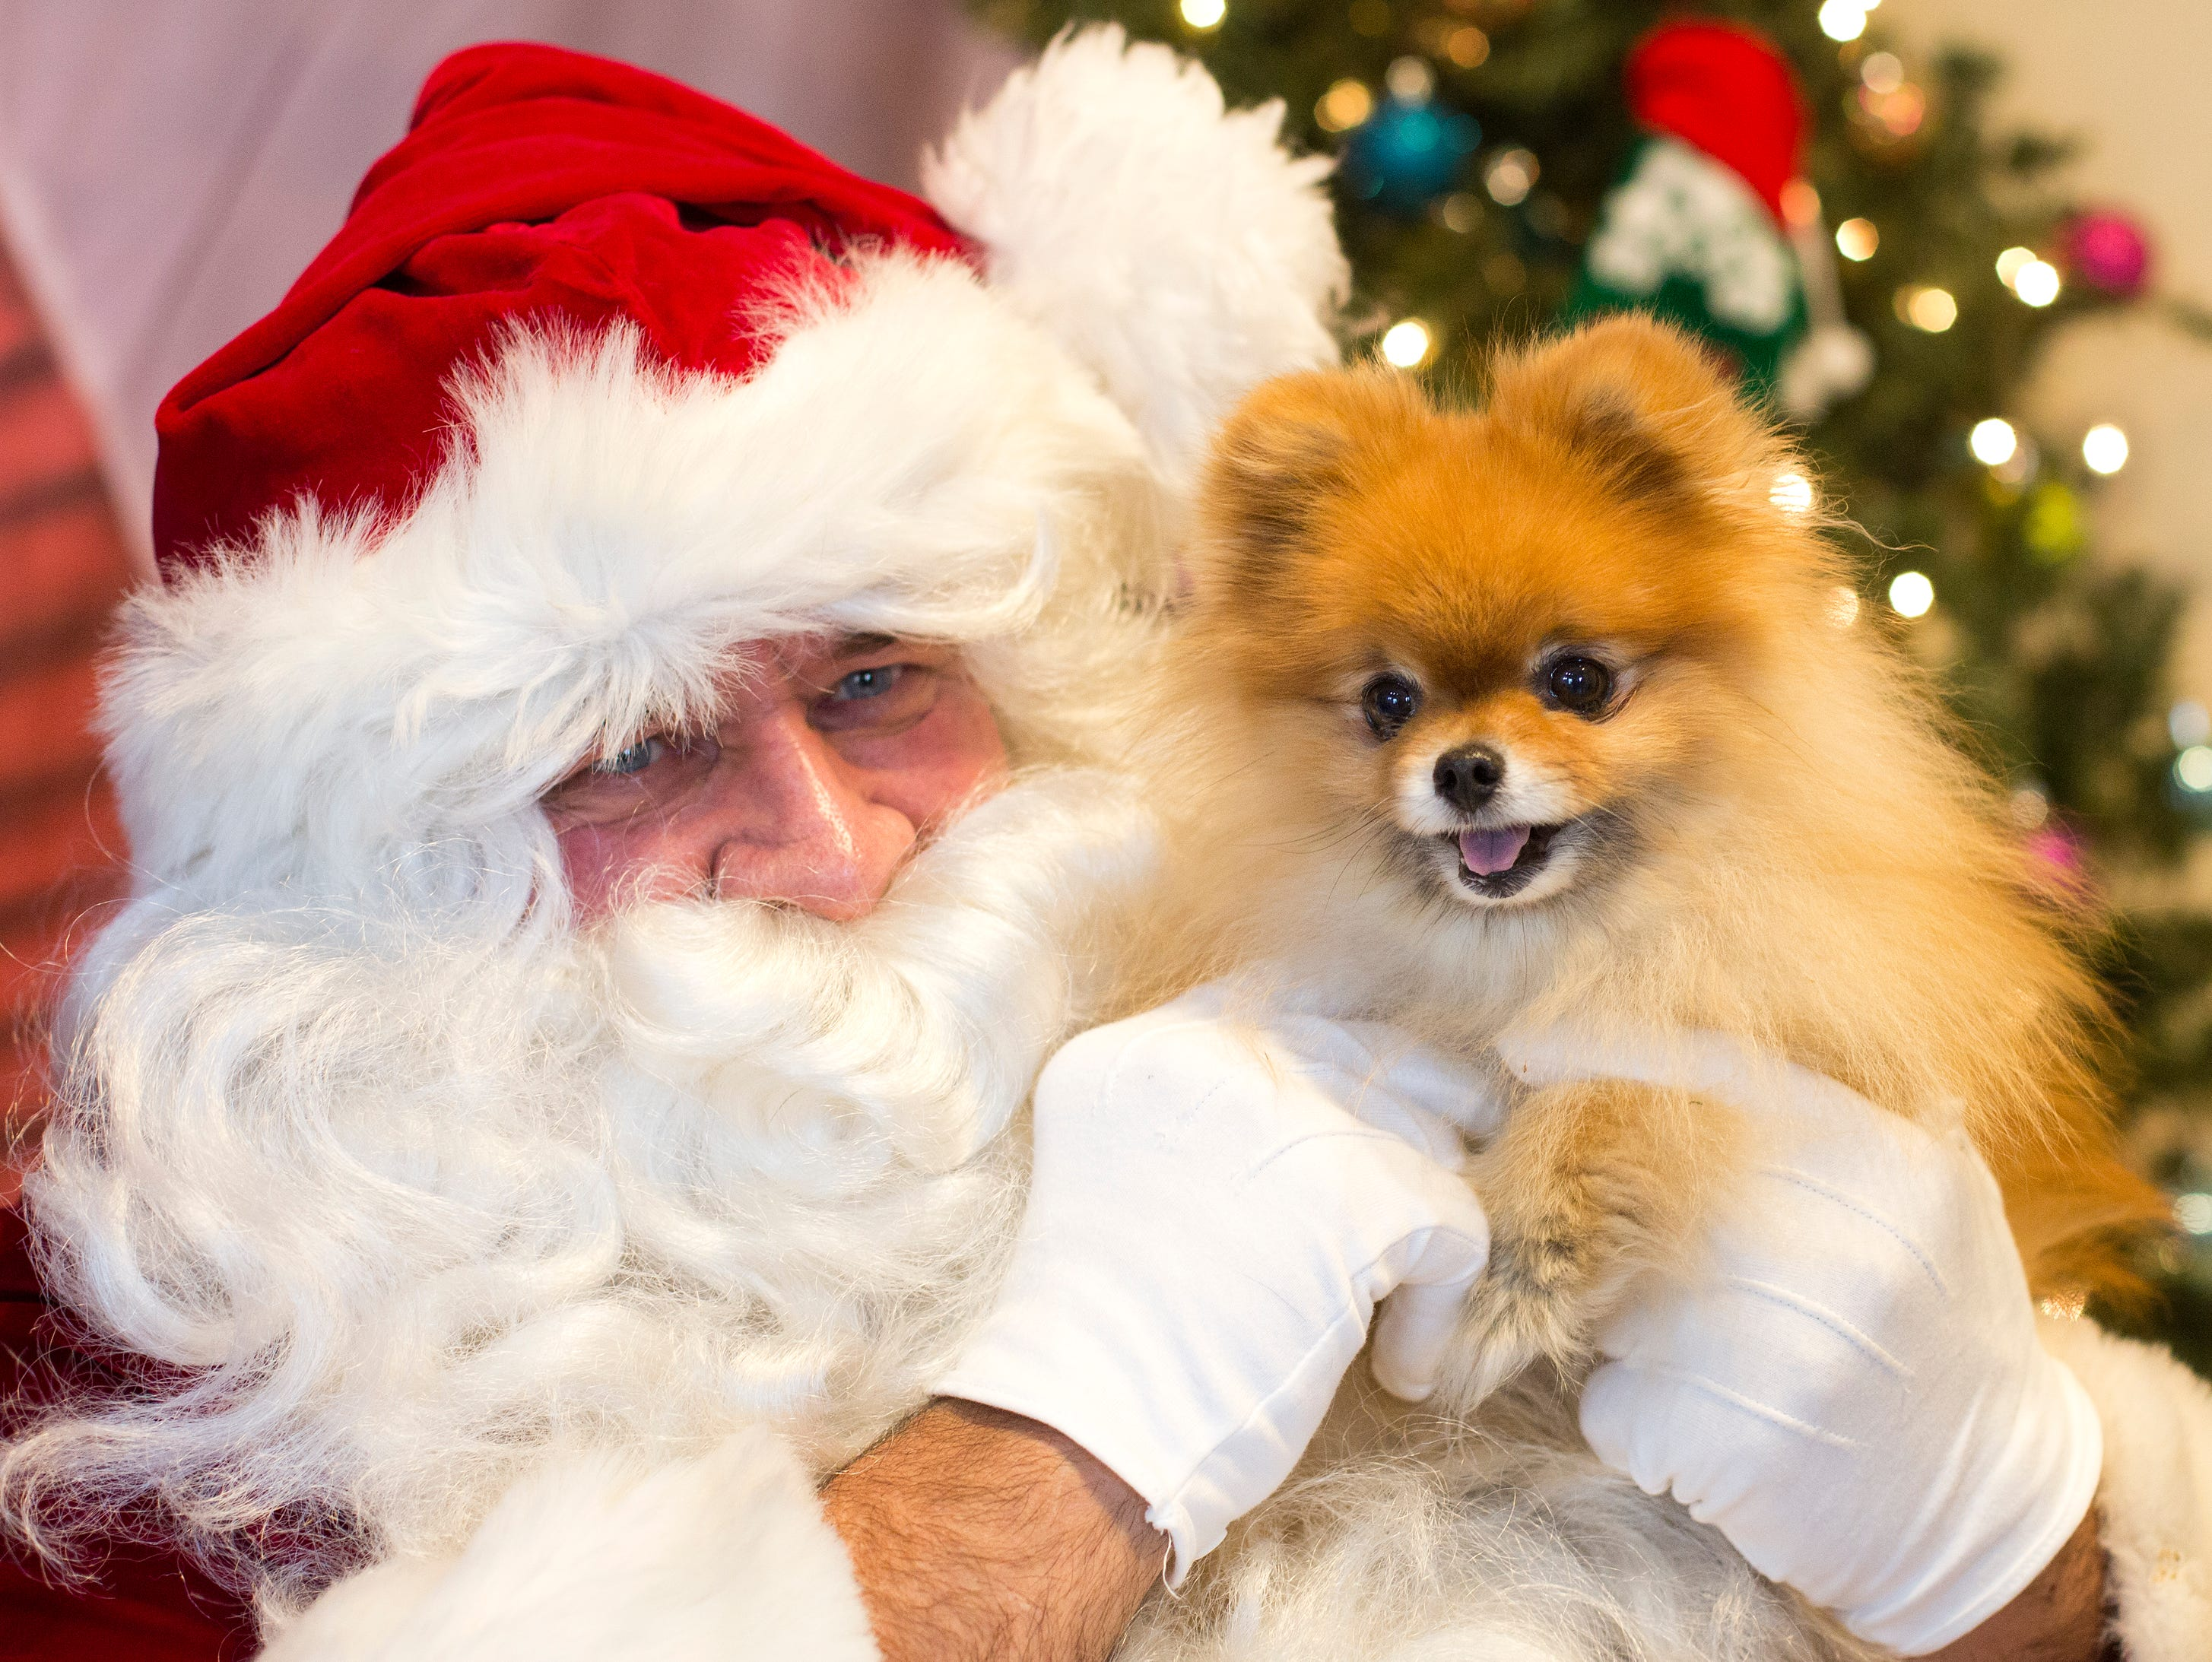 Roxy, a six year old Pomeranian from Hawthorne, meets Santa Claus for the first time during the Santa Paws photo session for pets at the Rampo-Bergen Animal Refuge Inc. in Oakland on Saturday, Dec. 1, 2018. Sponsored by Allstate, all proceeds from the photo sessions go directly towards the care of animals rescued by RBARI.